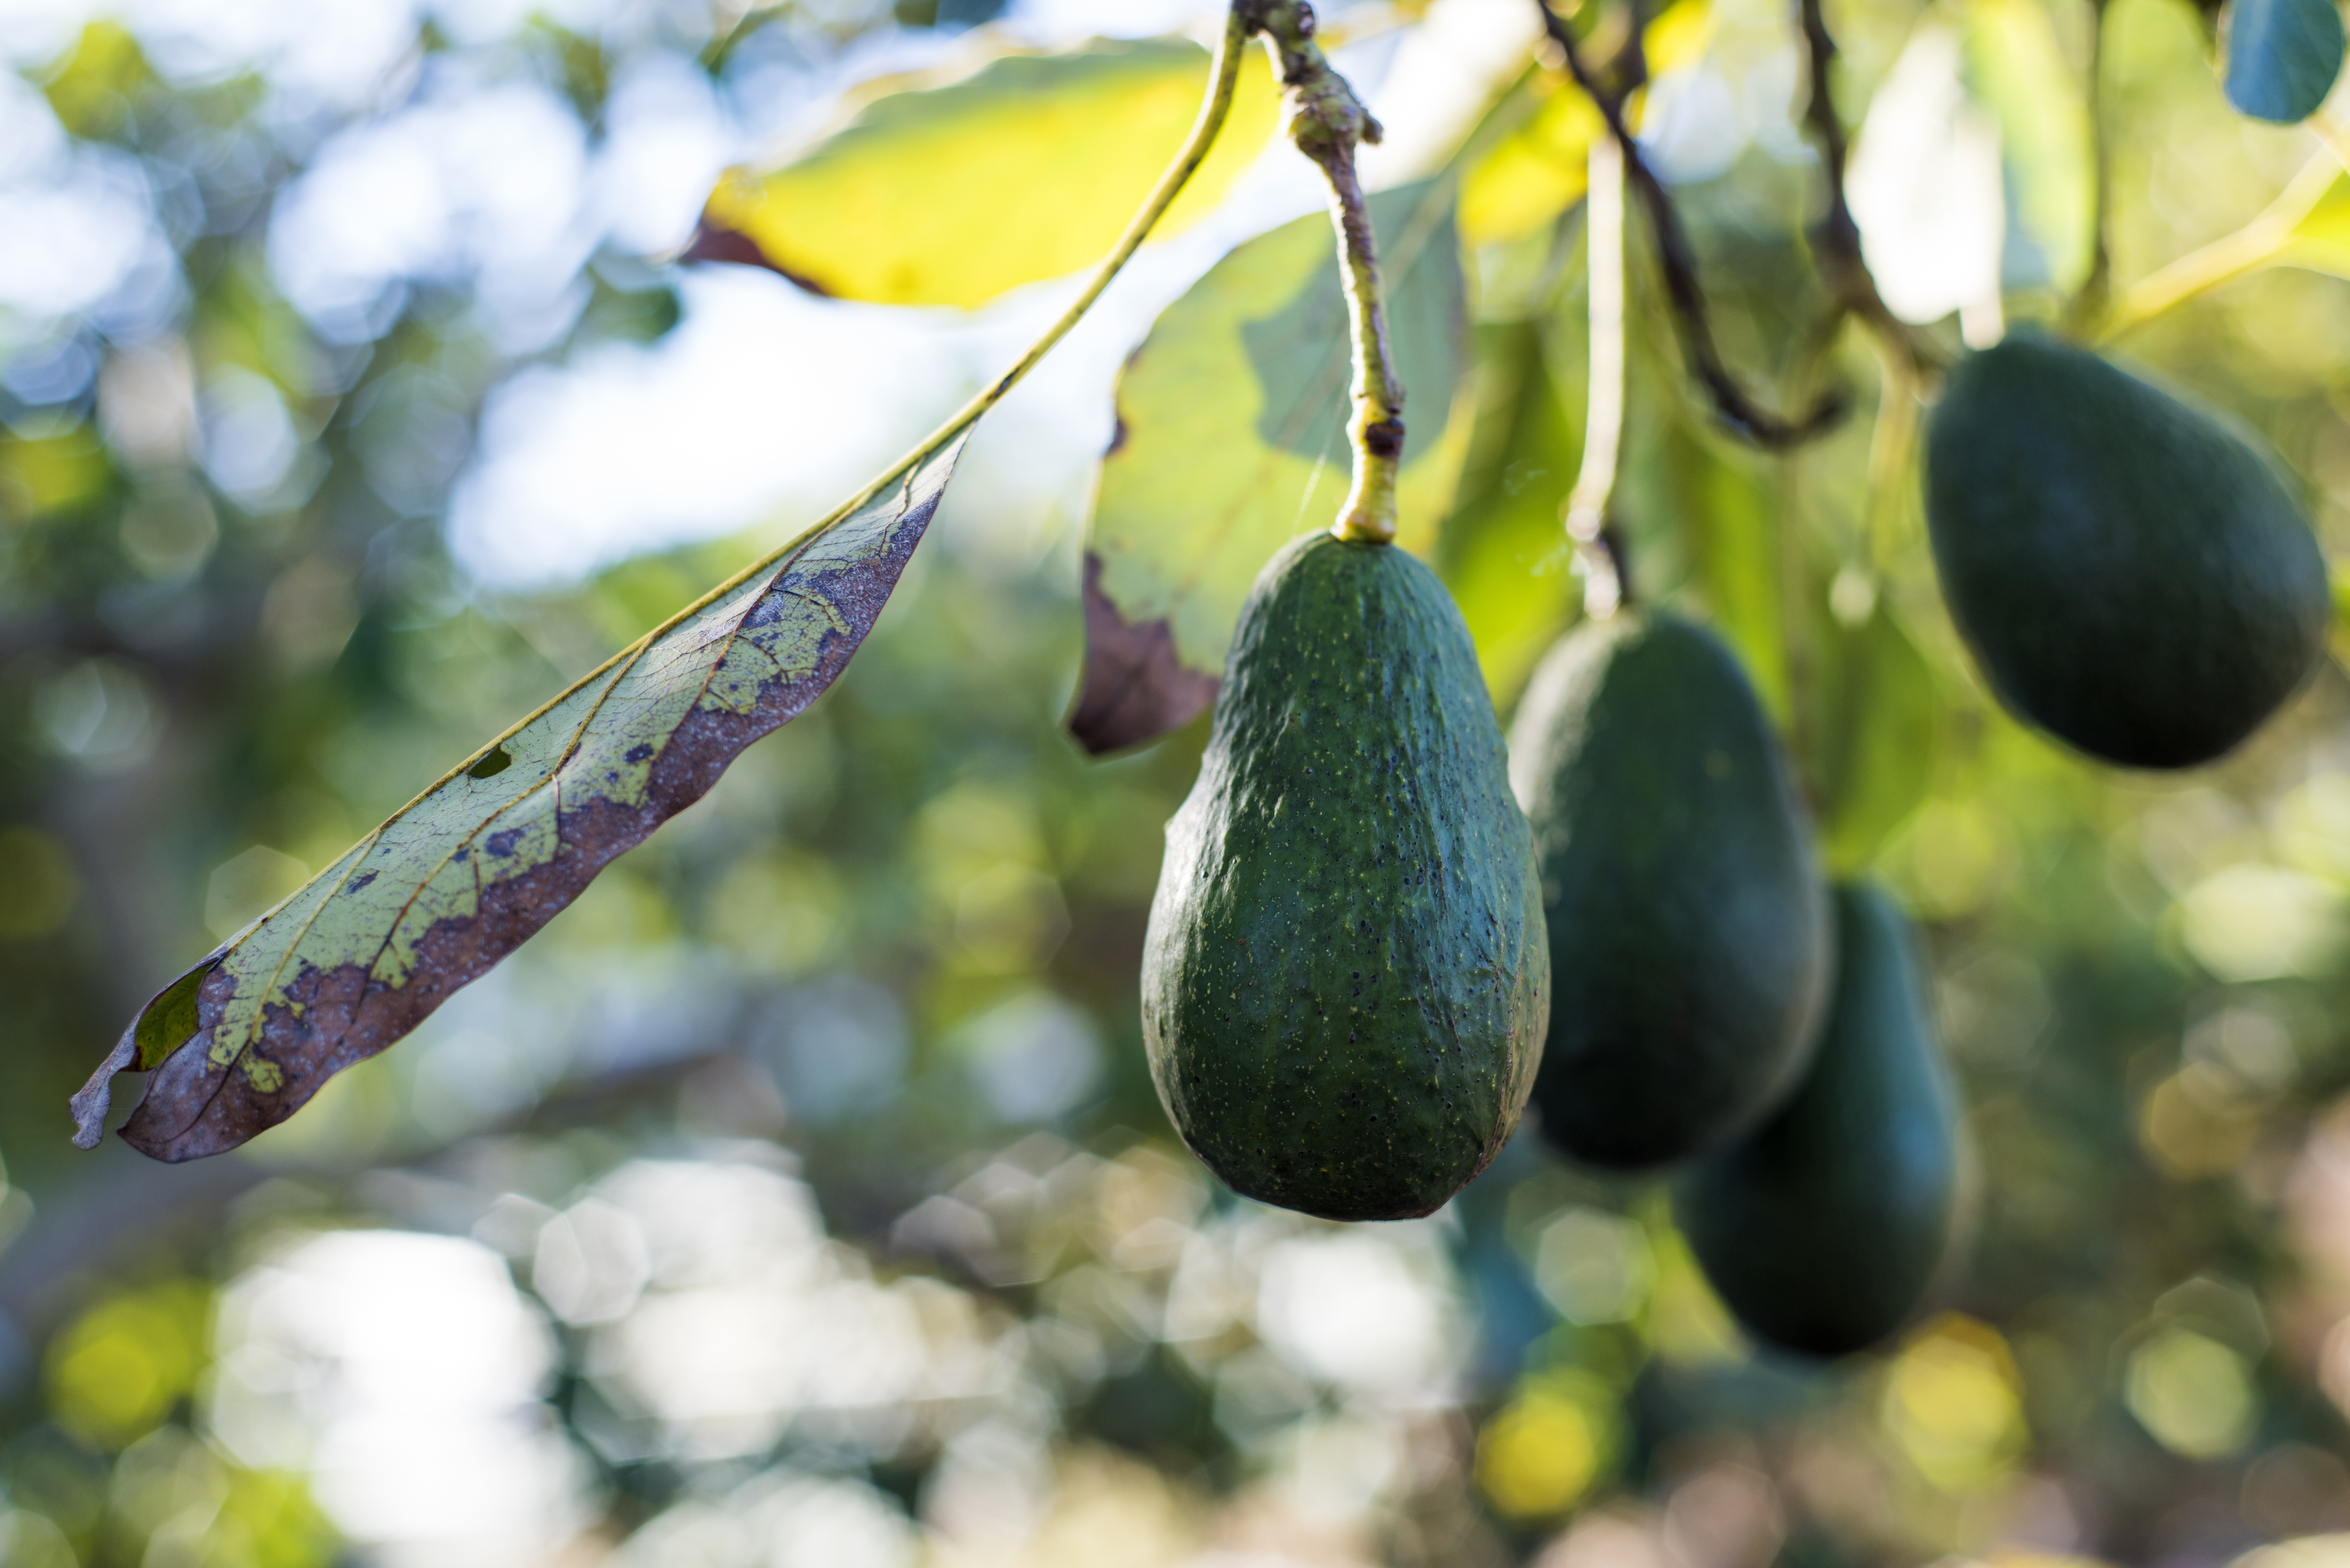 Conditions Required to Grow an Avocado Tree | Home Guides | SF Gate